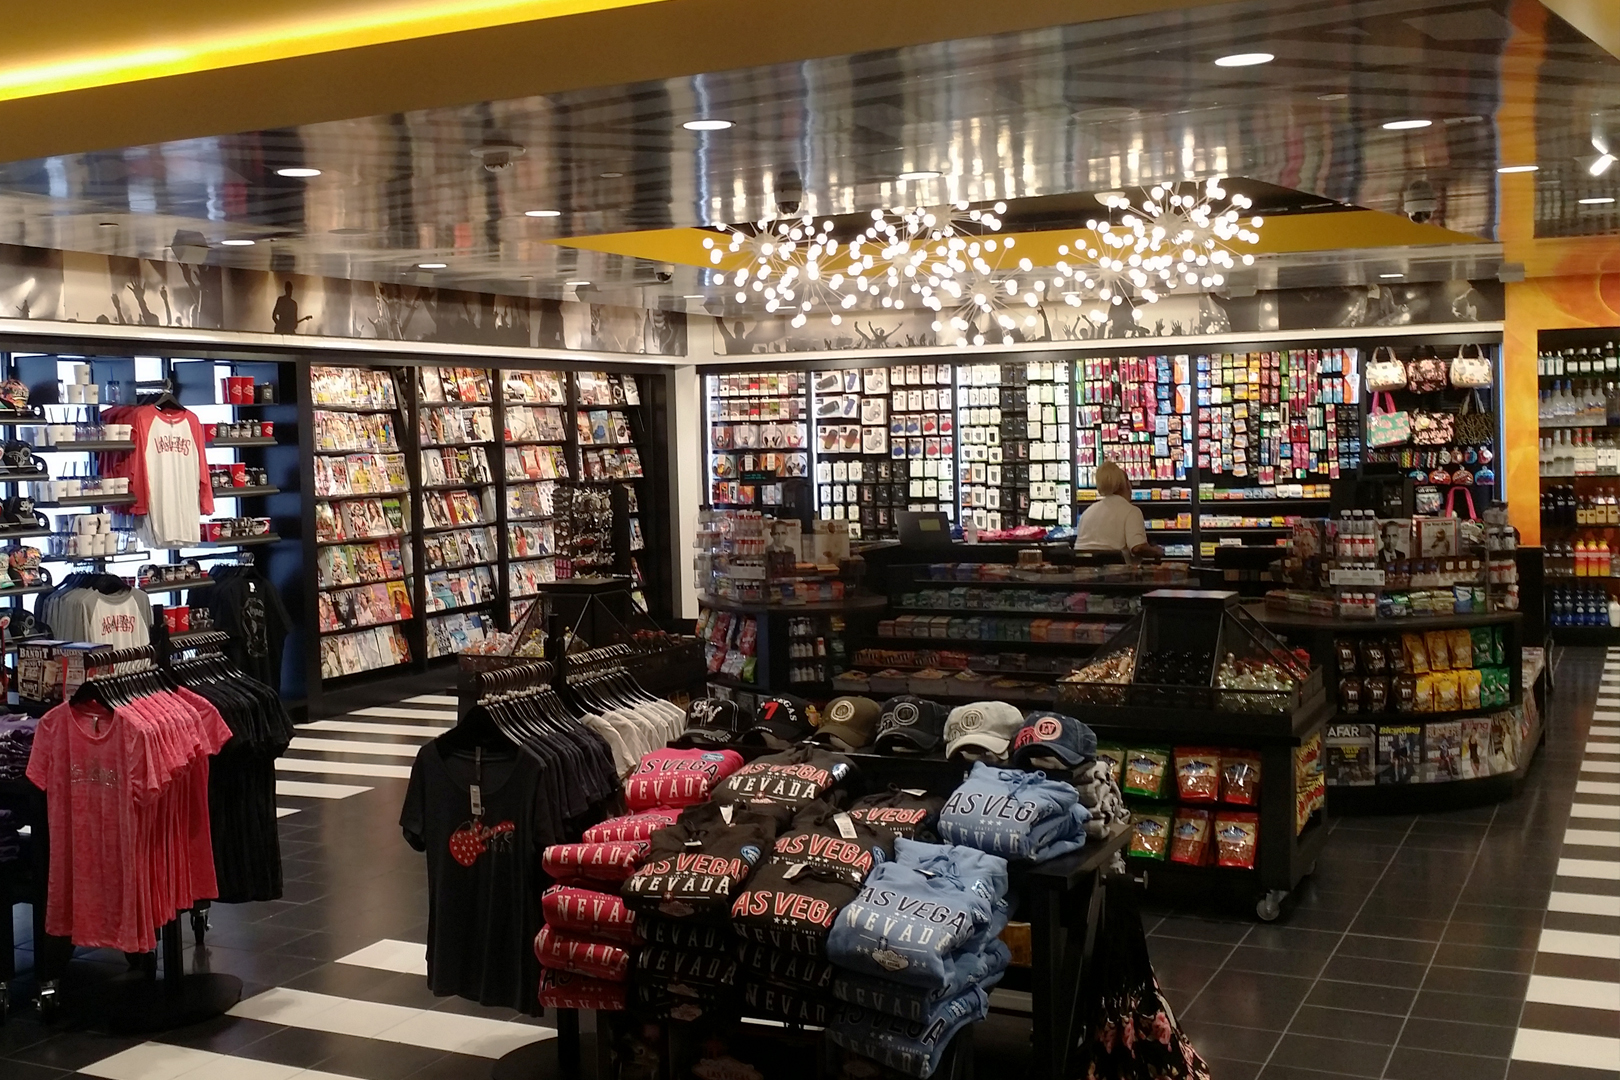 Wide shot of apparel in the foreground and wall retail fixtures in the background